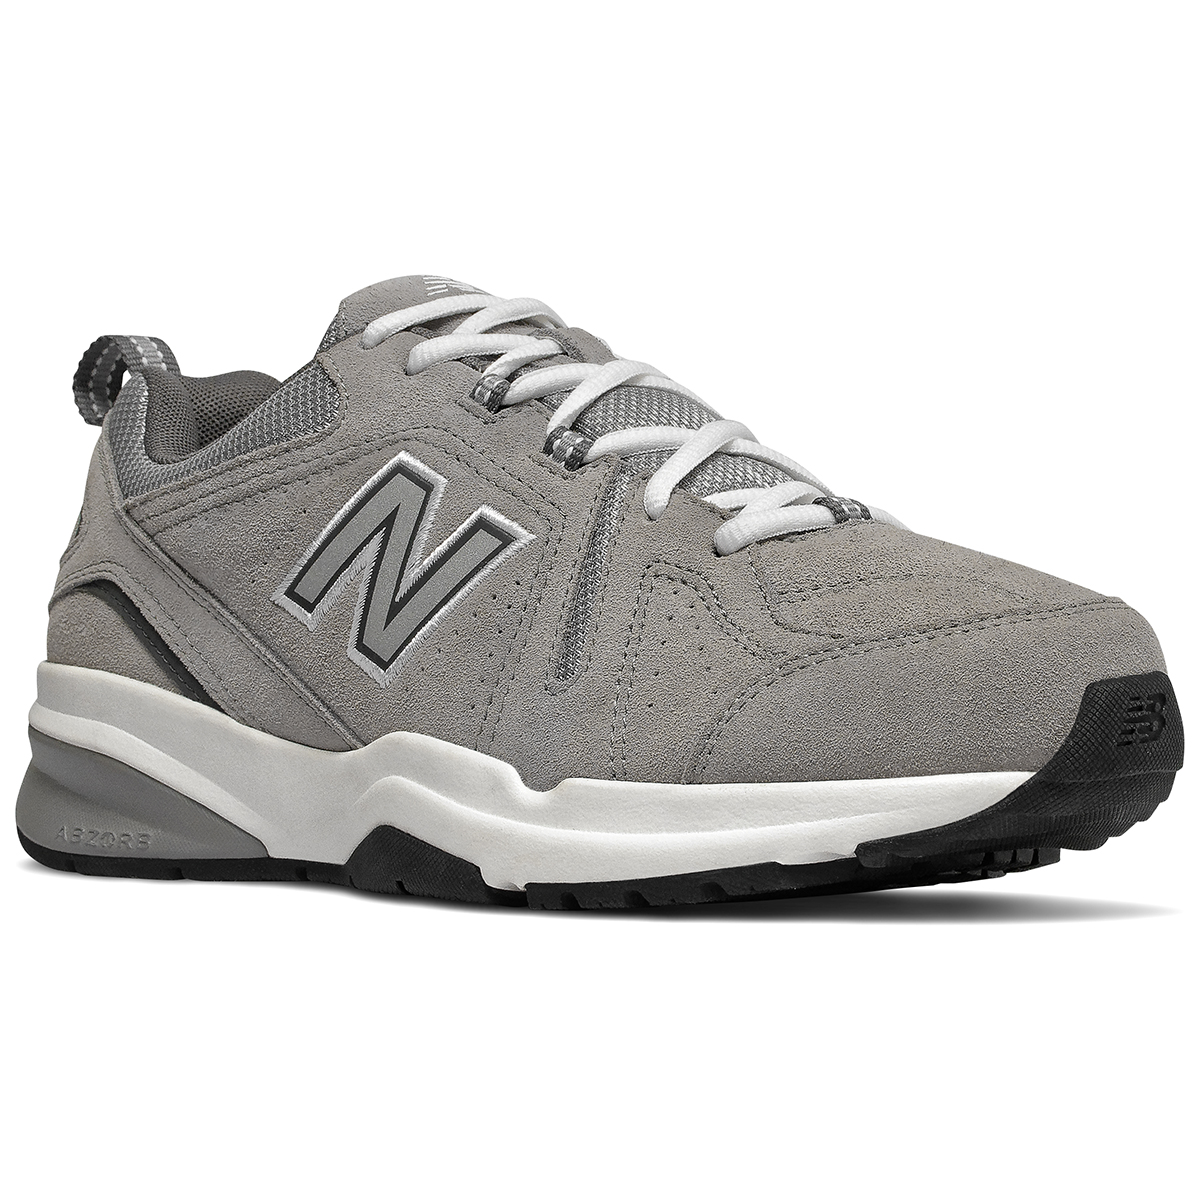 New Balance Women's 608 V5 Sneaker - Black, 10.5